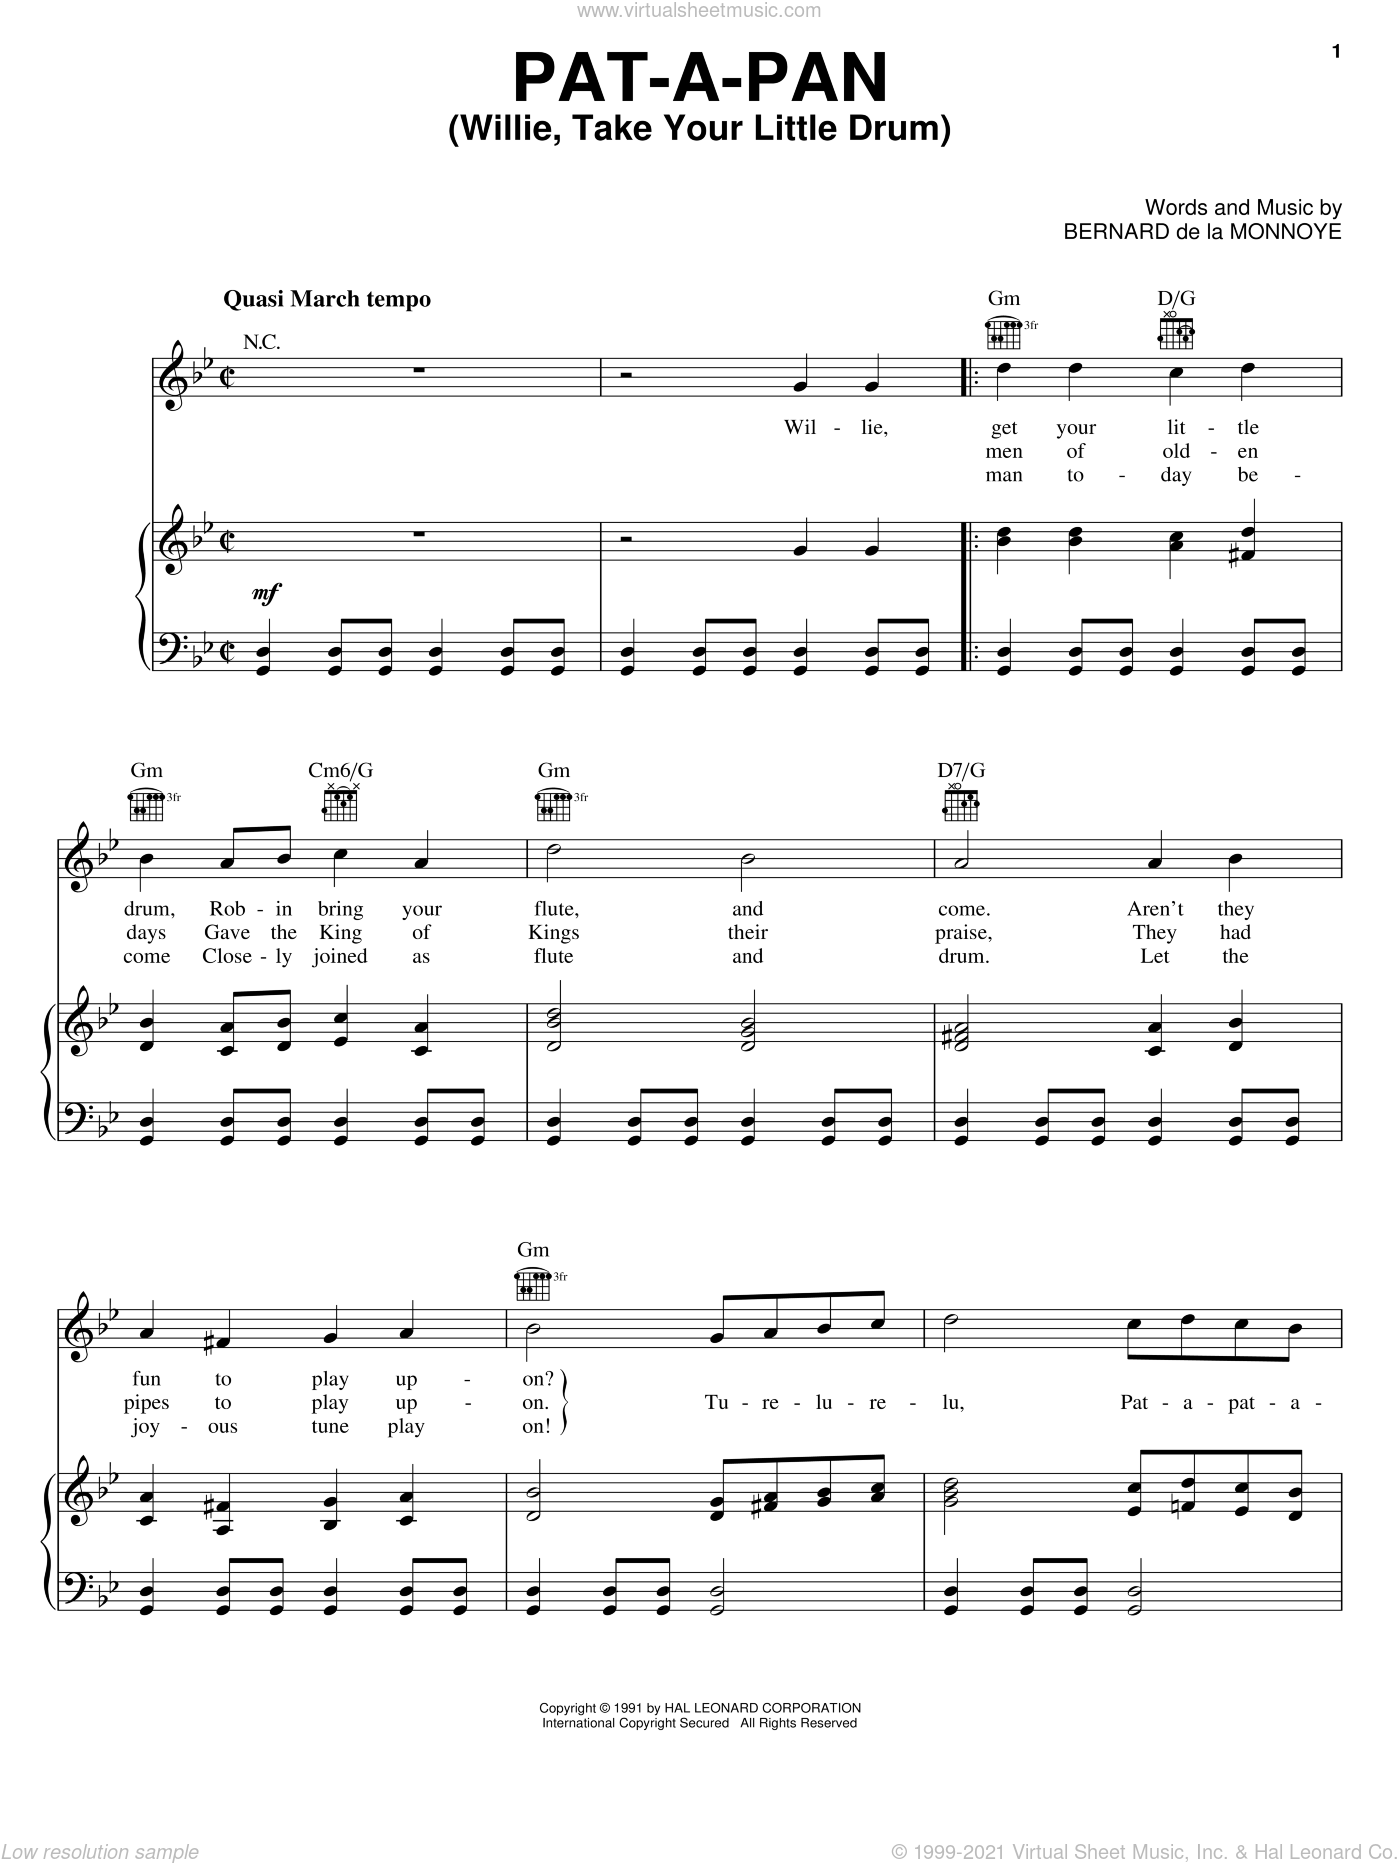 Pat-A-Pan (Willie, Take Your Little Drum) sheet music for voice, piano or guitar by Bernard de la Monnoye